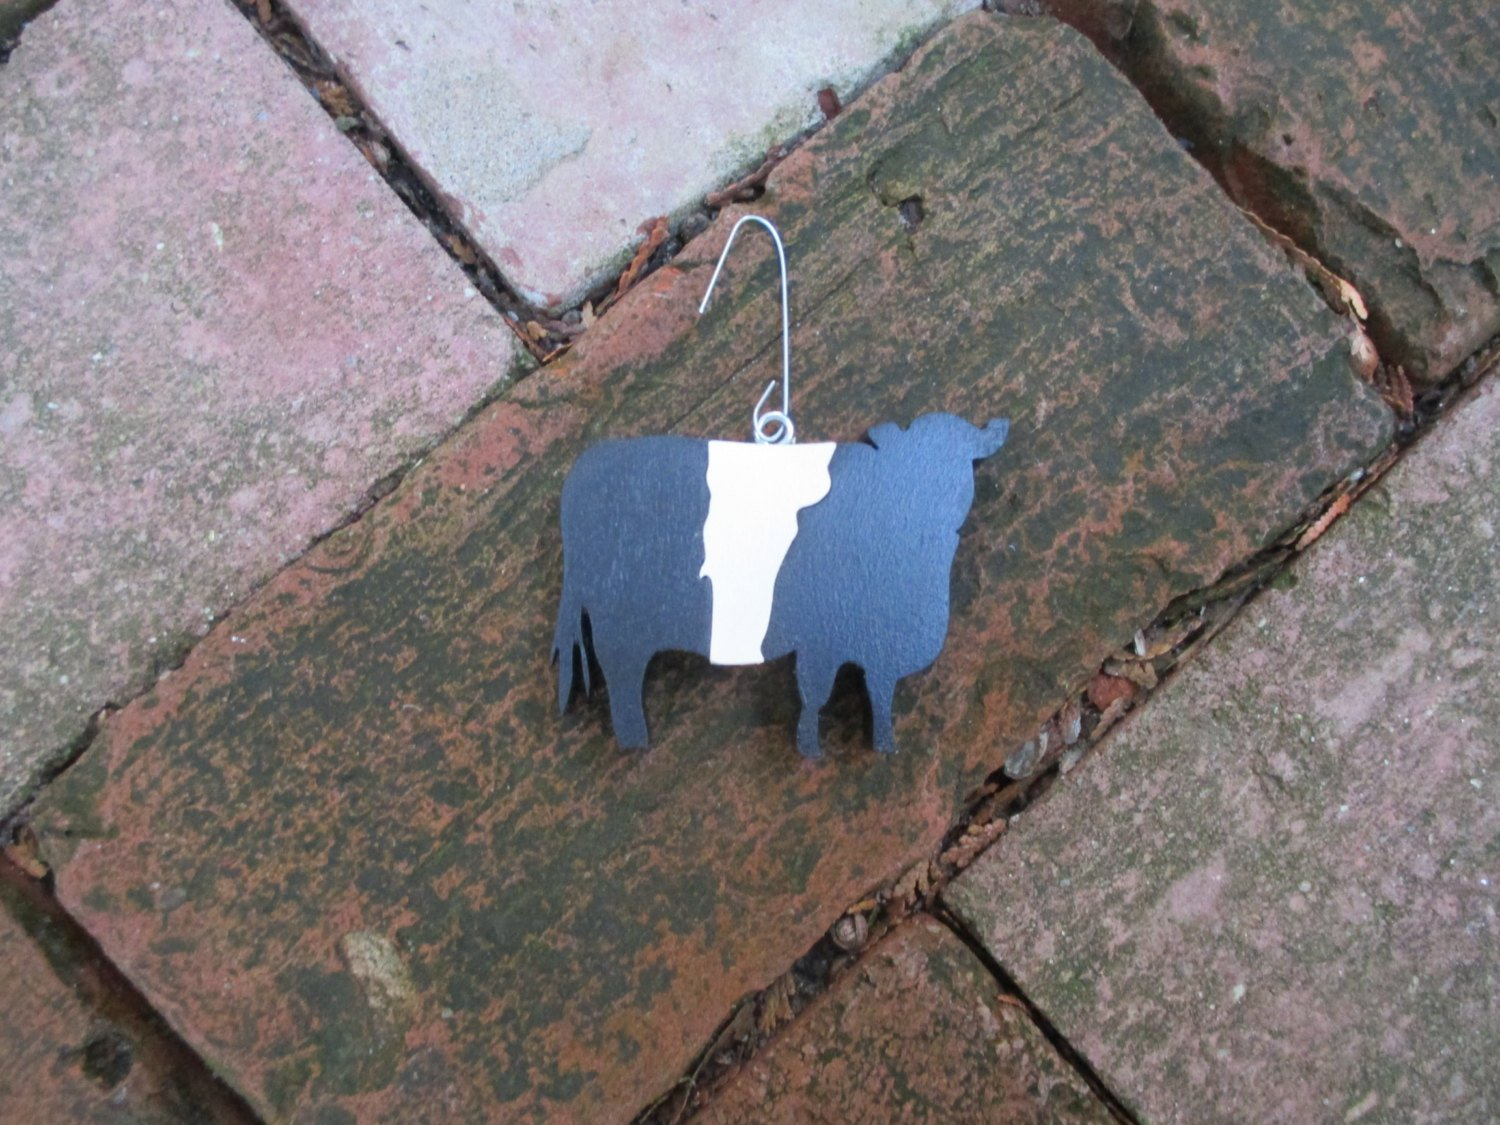 Belted Galloway ornament - Cow Ornament - Christmas Tree Cow Ornament - Belted Galloway Magnet - Vermont Ornament - Vermont Magnet - Holiday